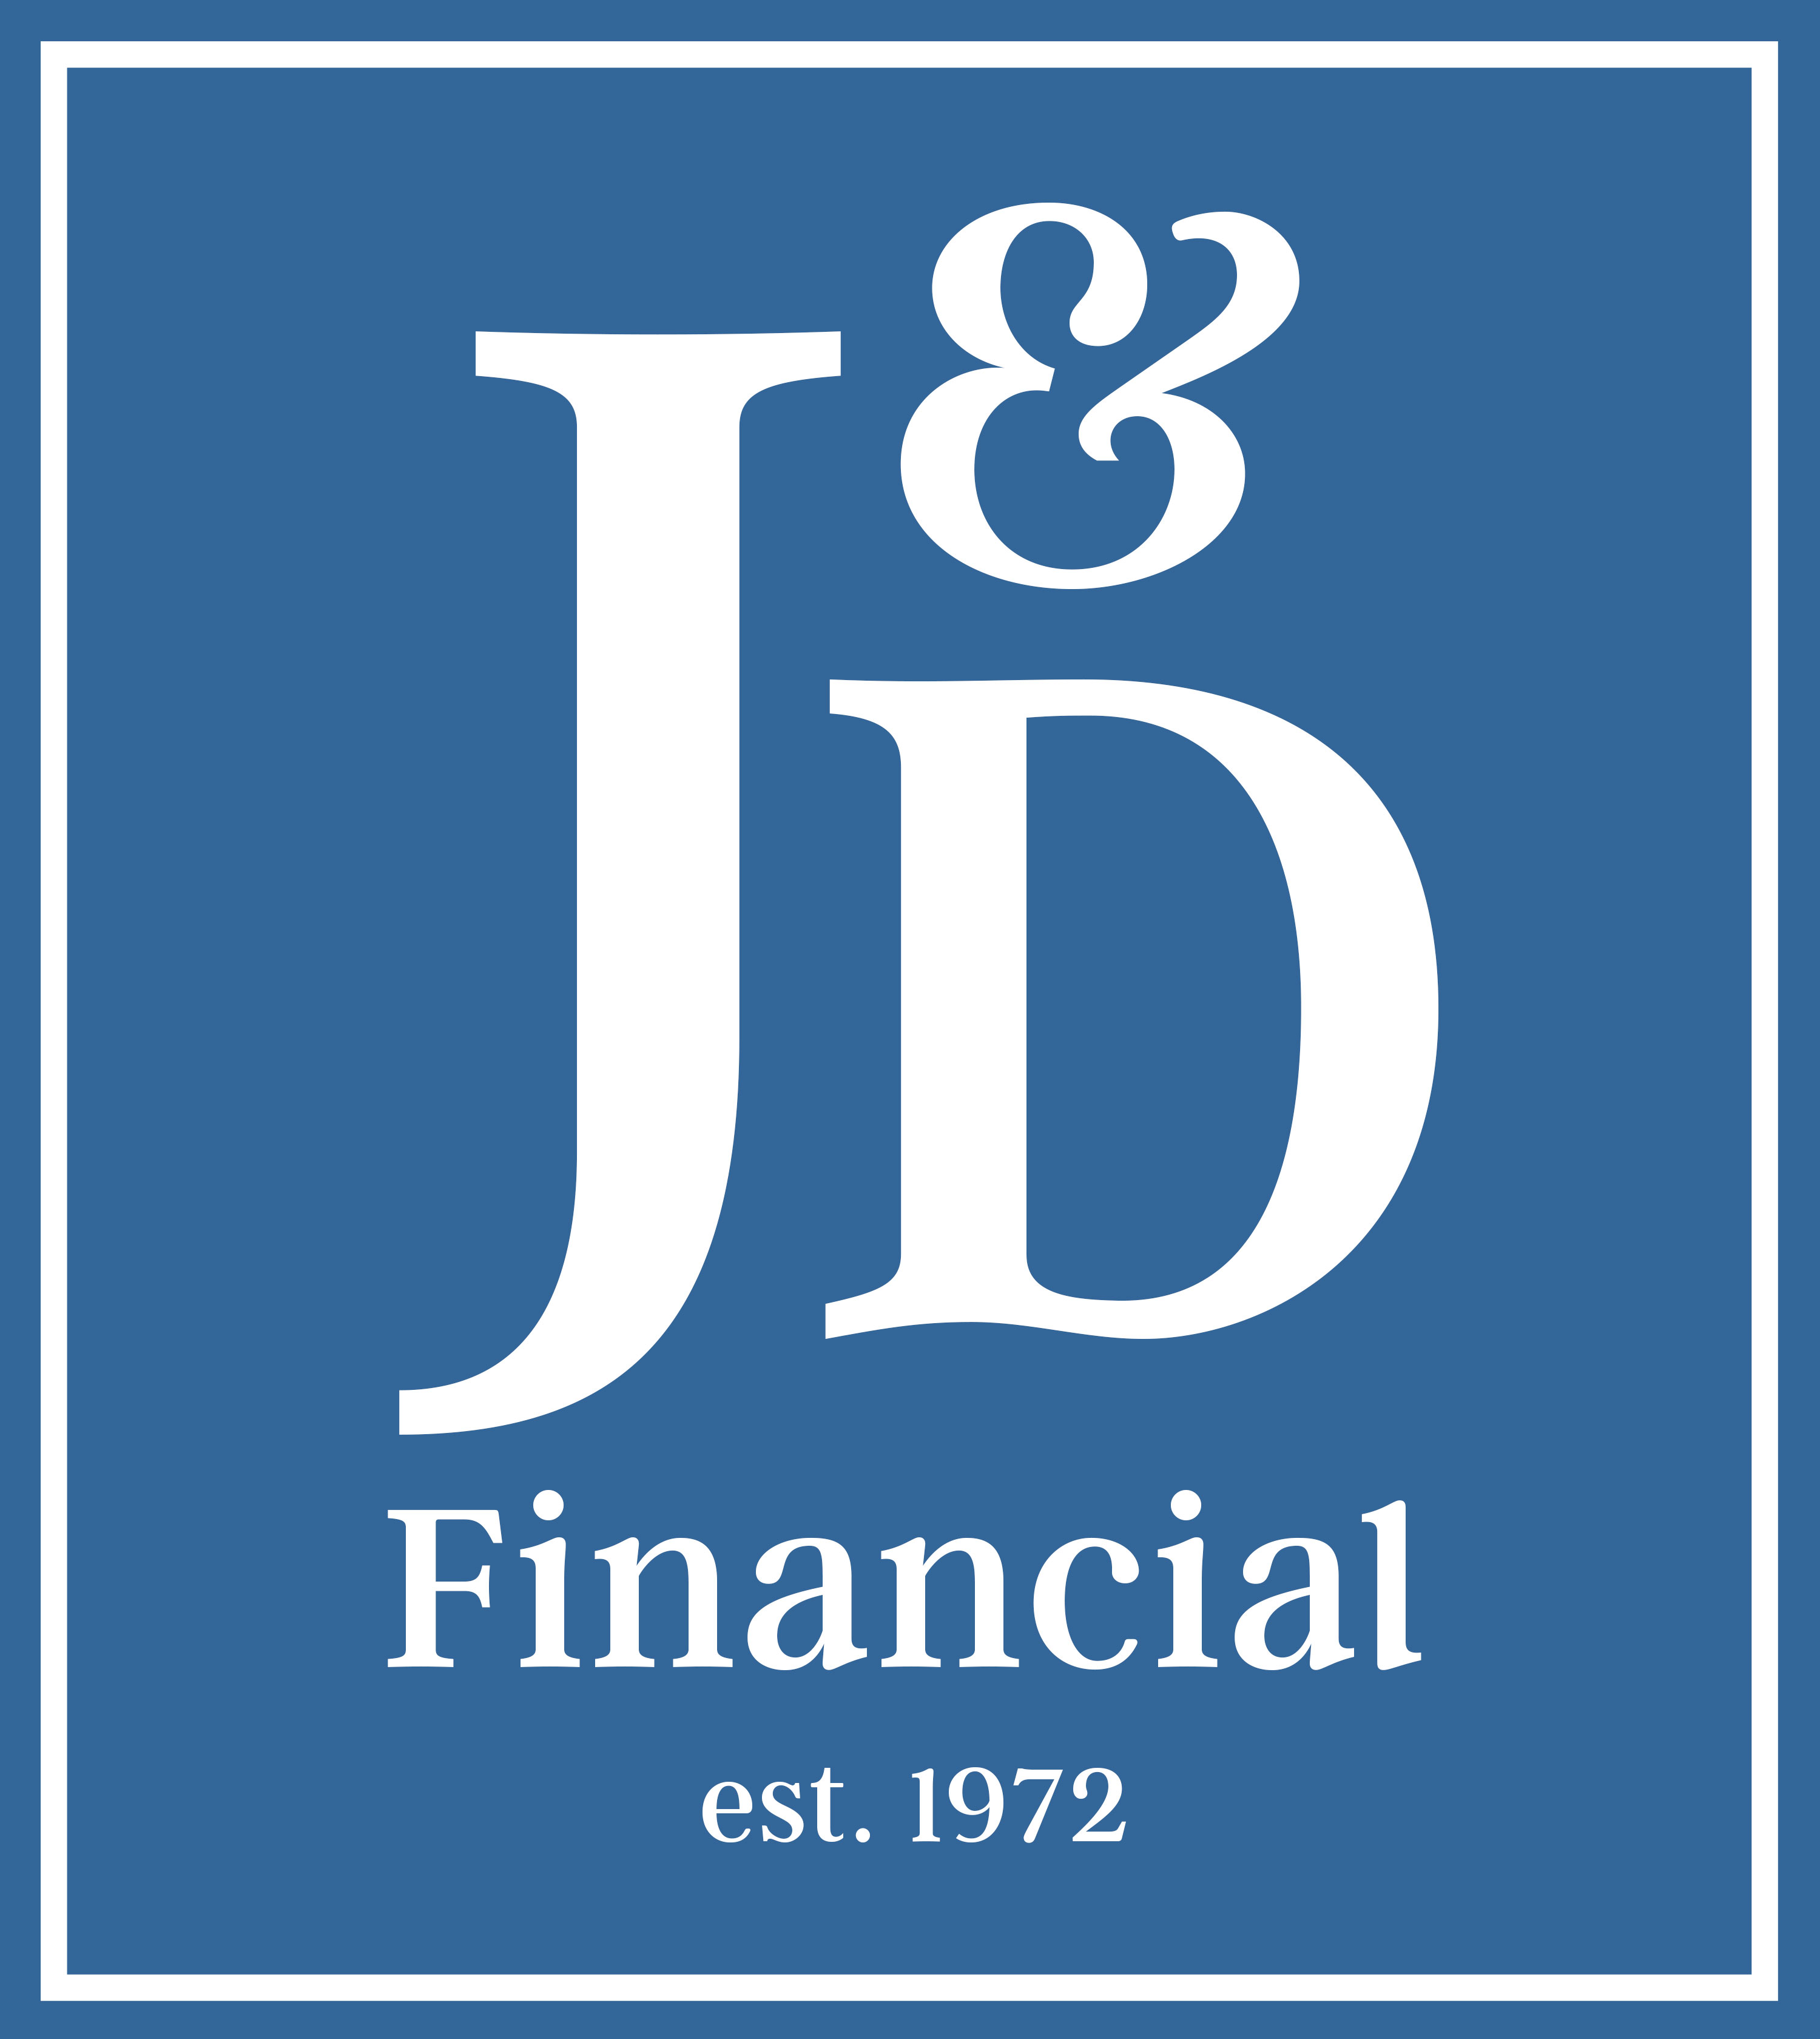 JD Financial